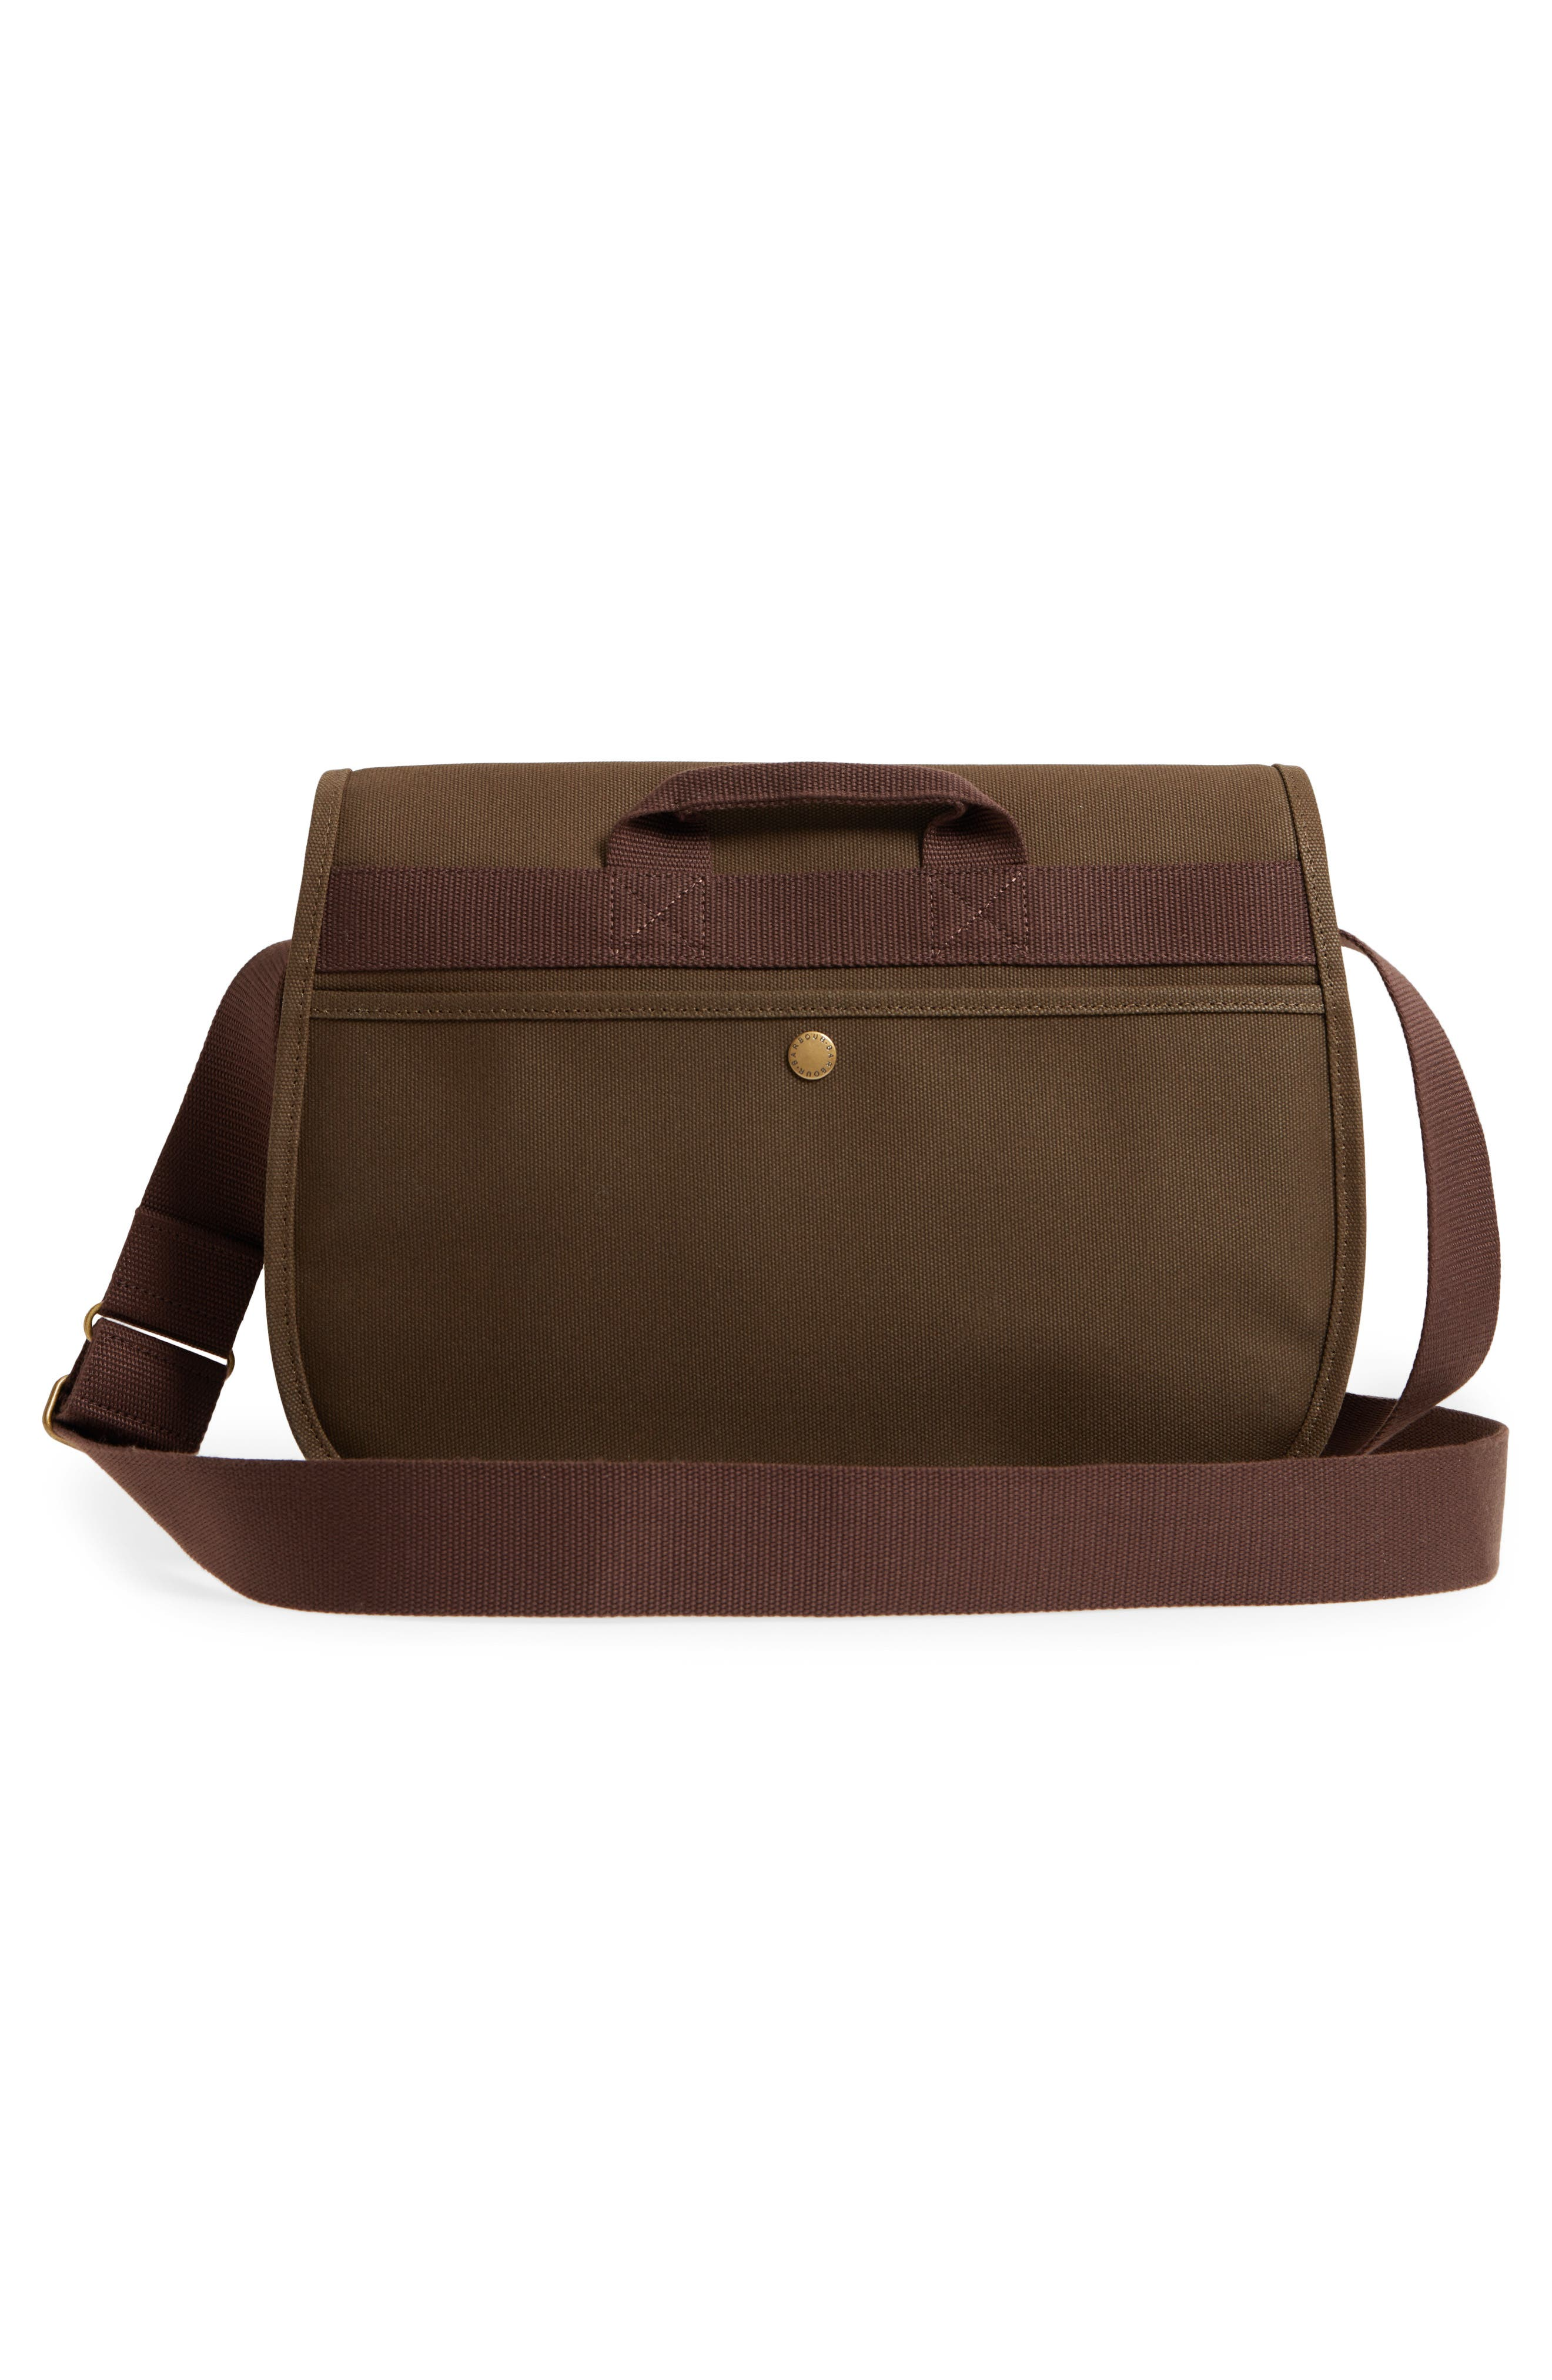 Tarras Canvas Messenger Bag,                             Alternate thumbnail 3, color,                             OLIVE